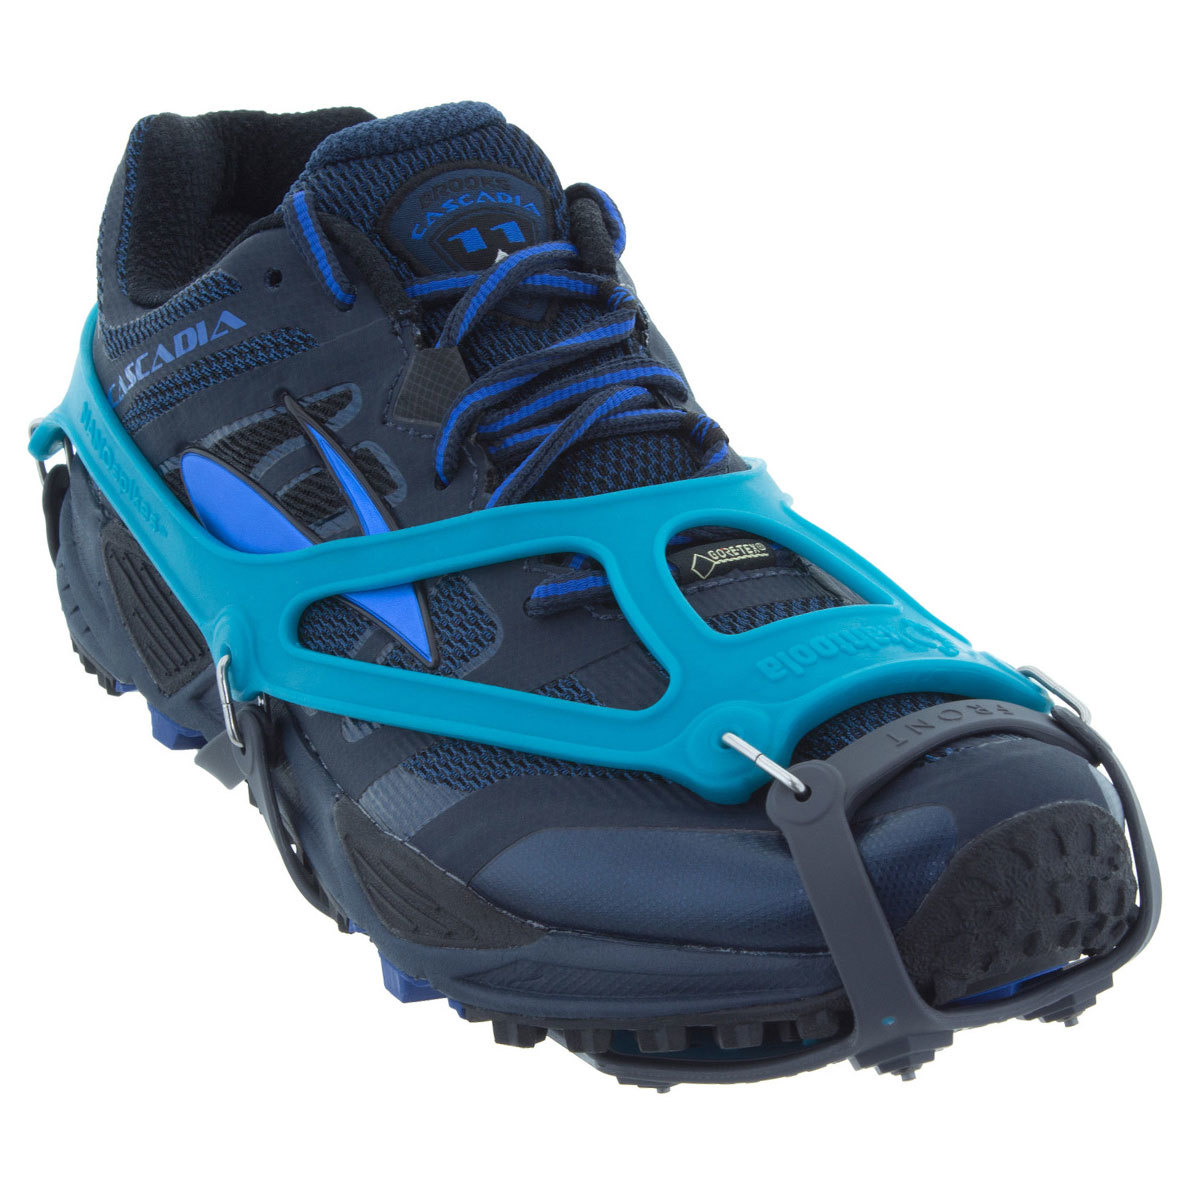 Kahtoola Nanospikes Footwear Traction - Blue, XS